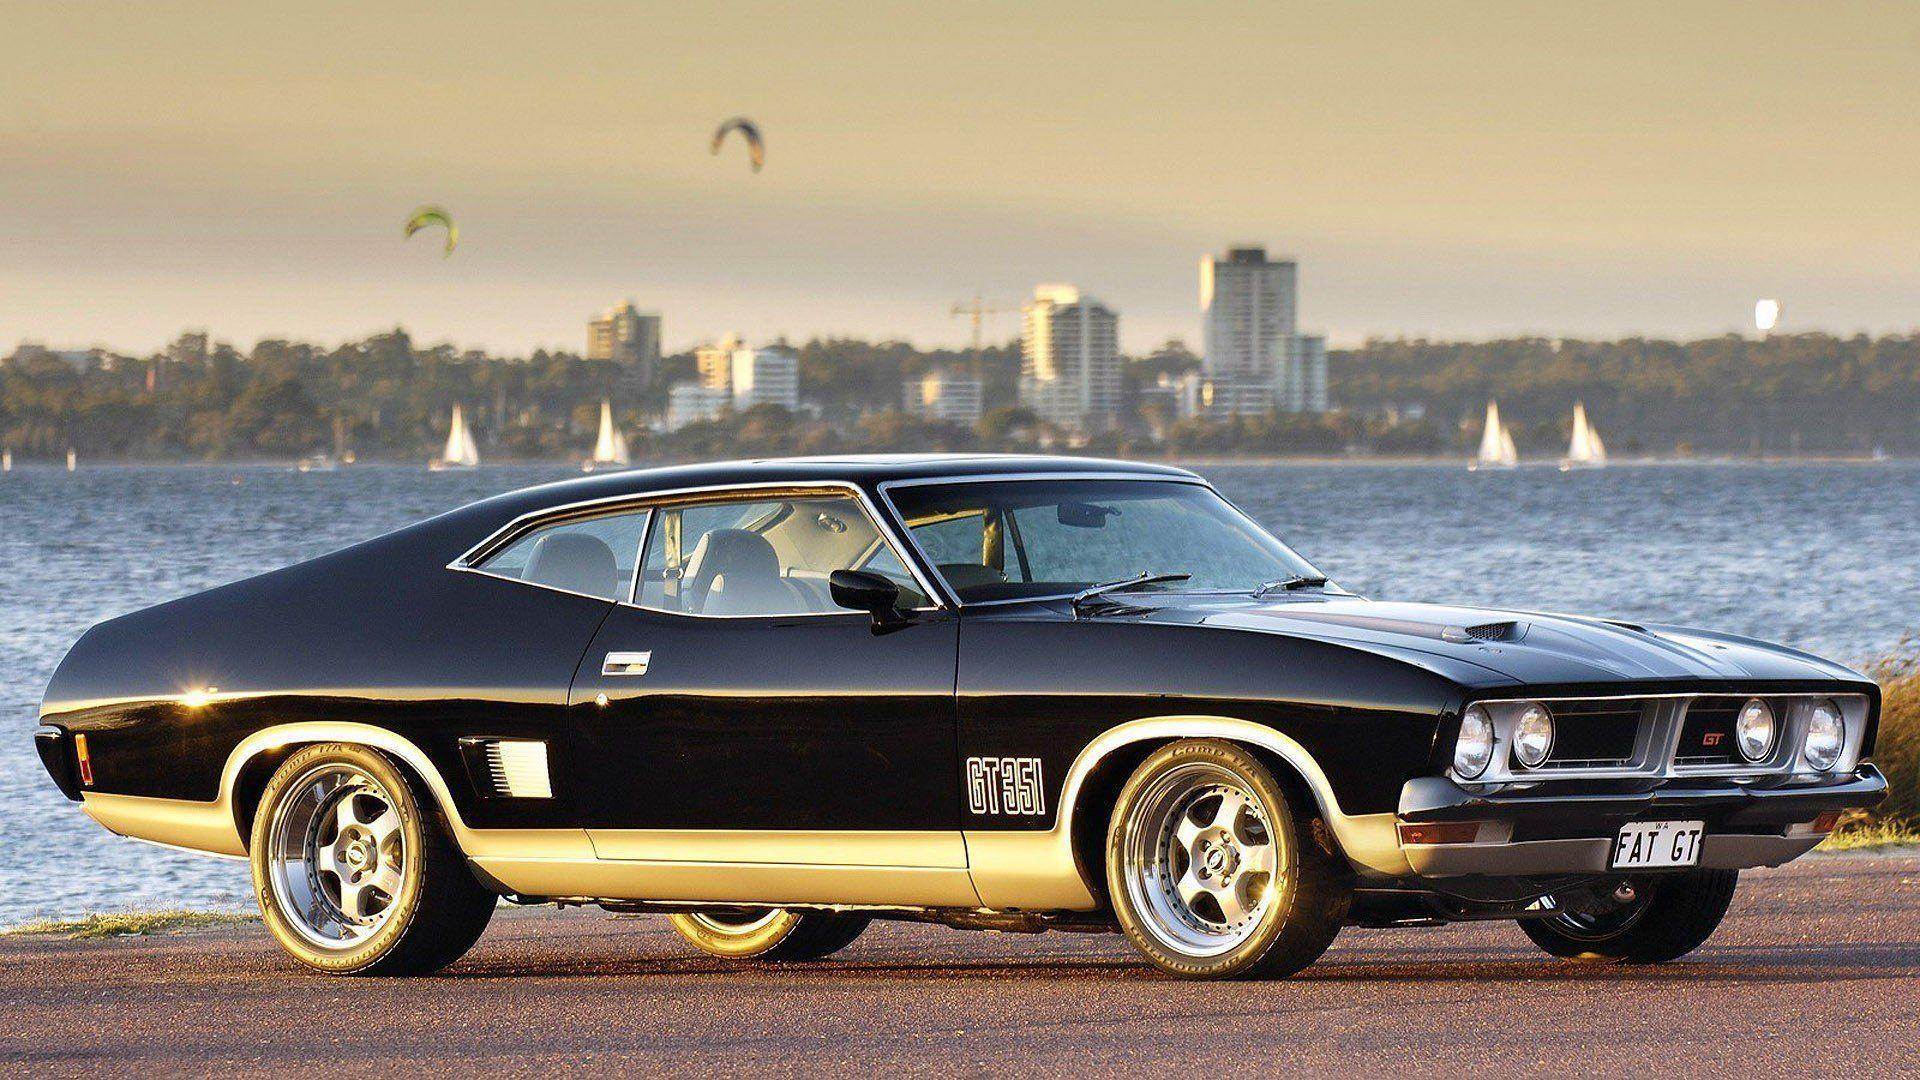 Ford Falcon Xb Wallpapers